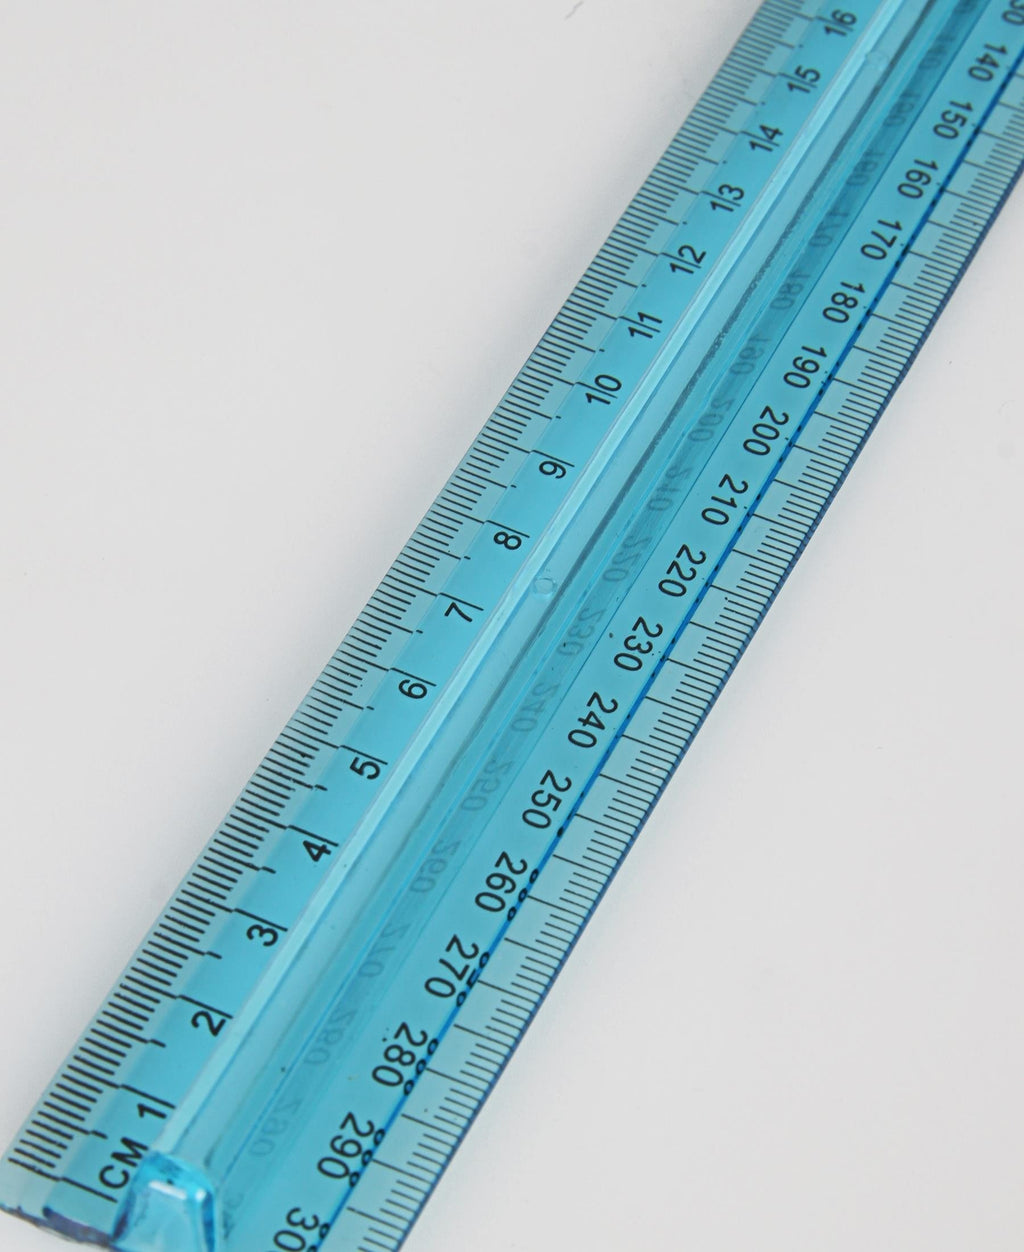 Marlin Finger Grip Ruler - Blue